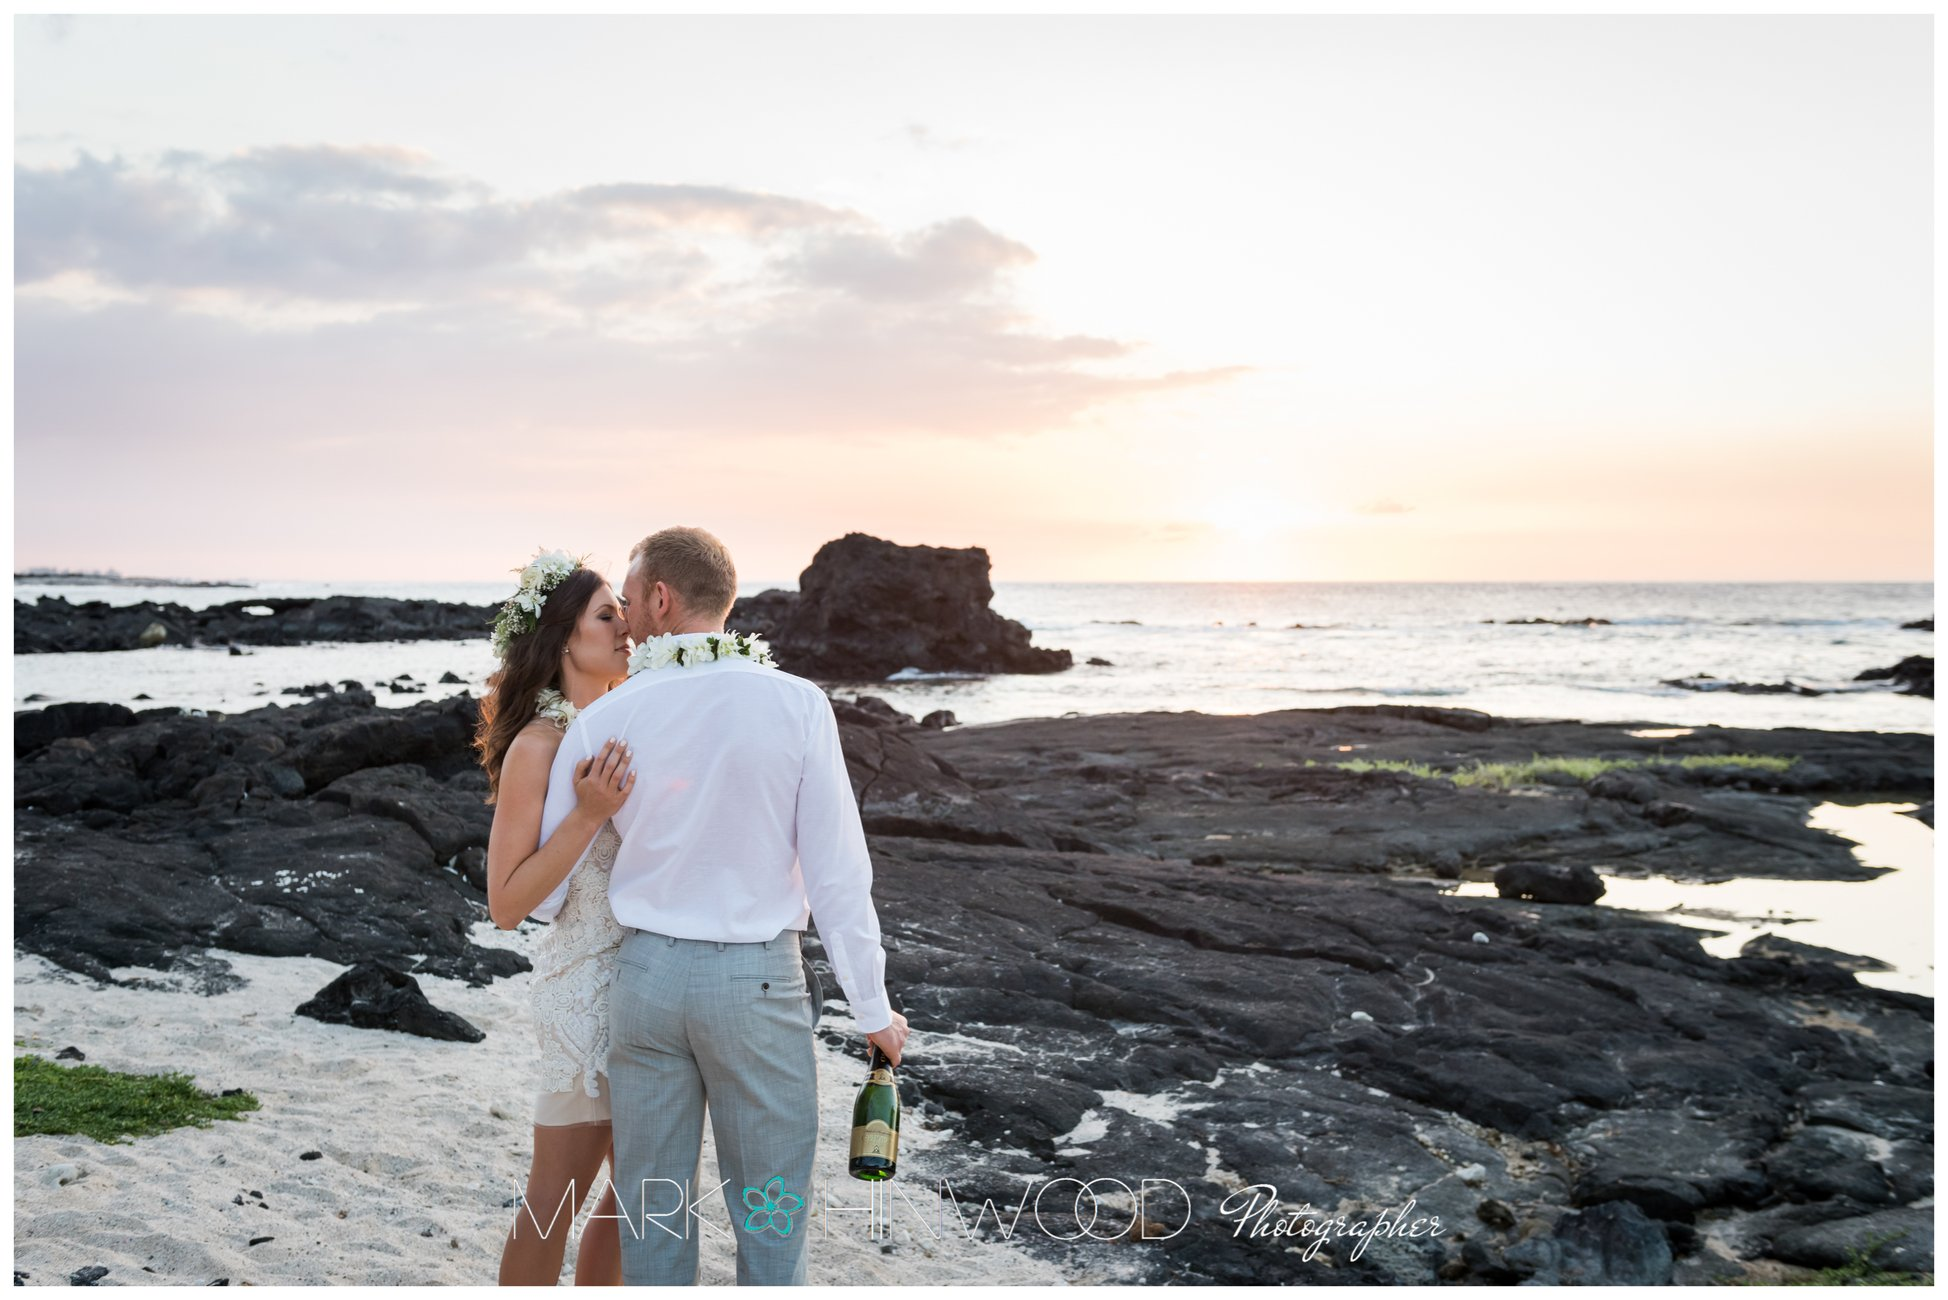 Amazing Hawaii beach weddings 14